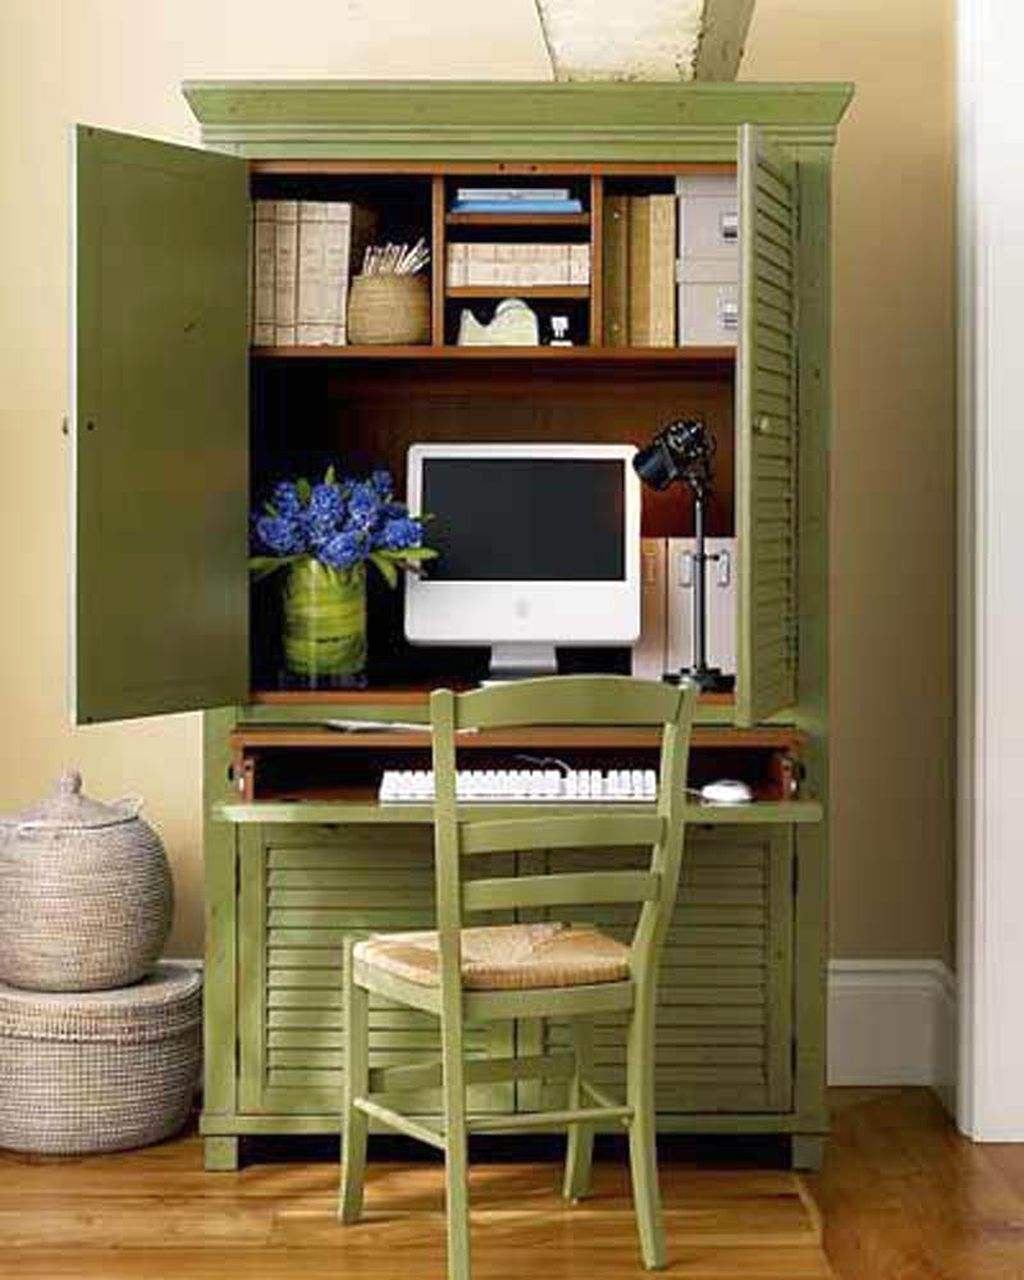 Green cupboard home office design ideas for small spaces for Home office ideas